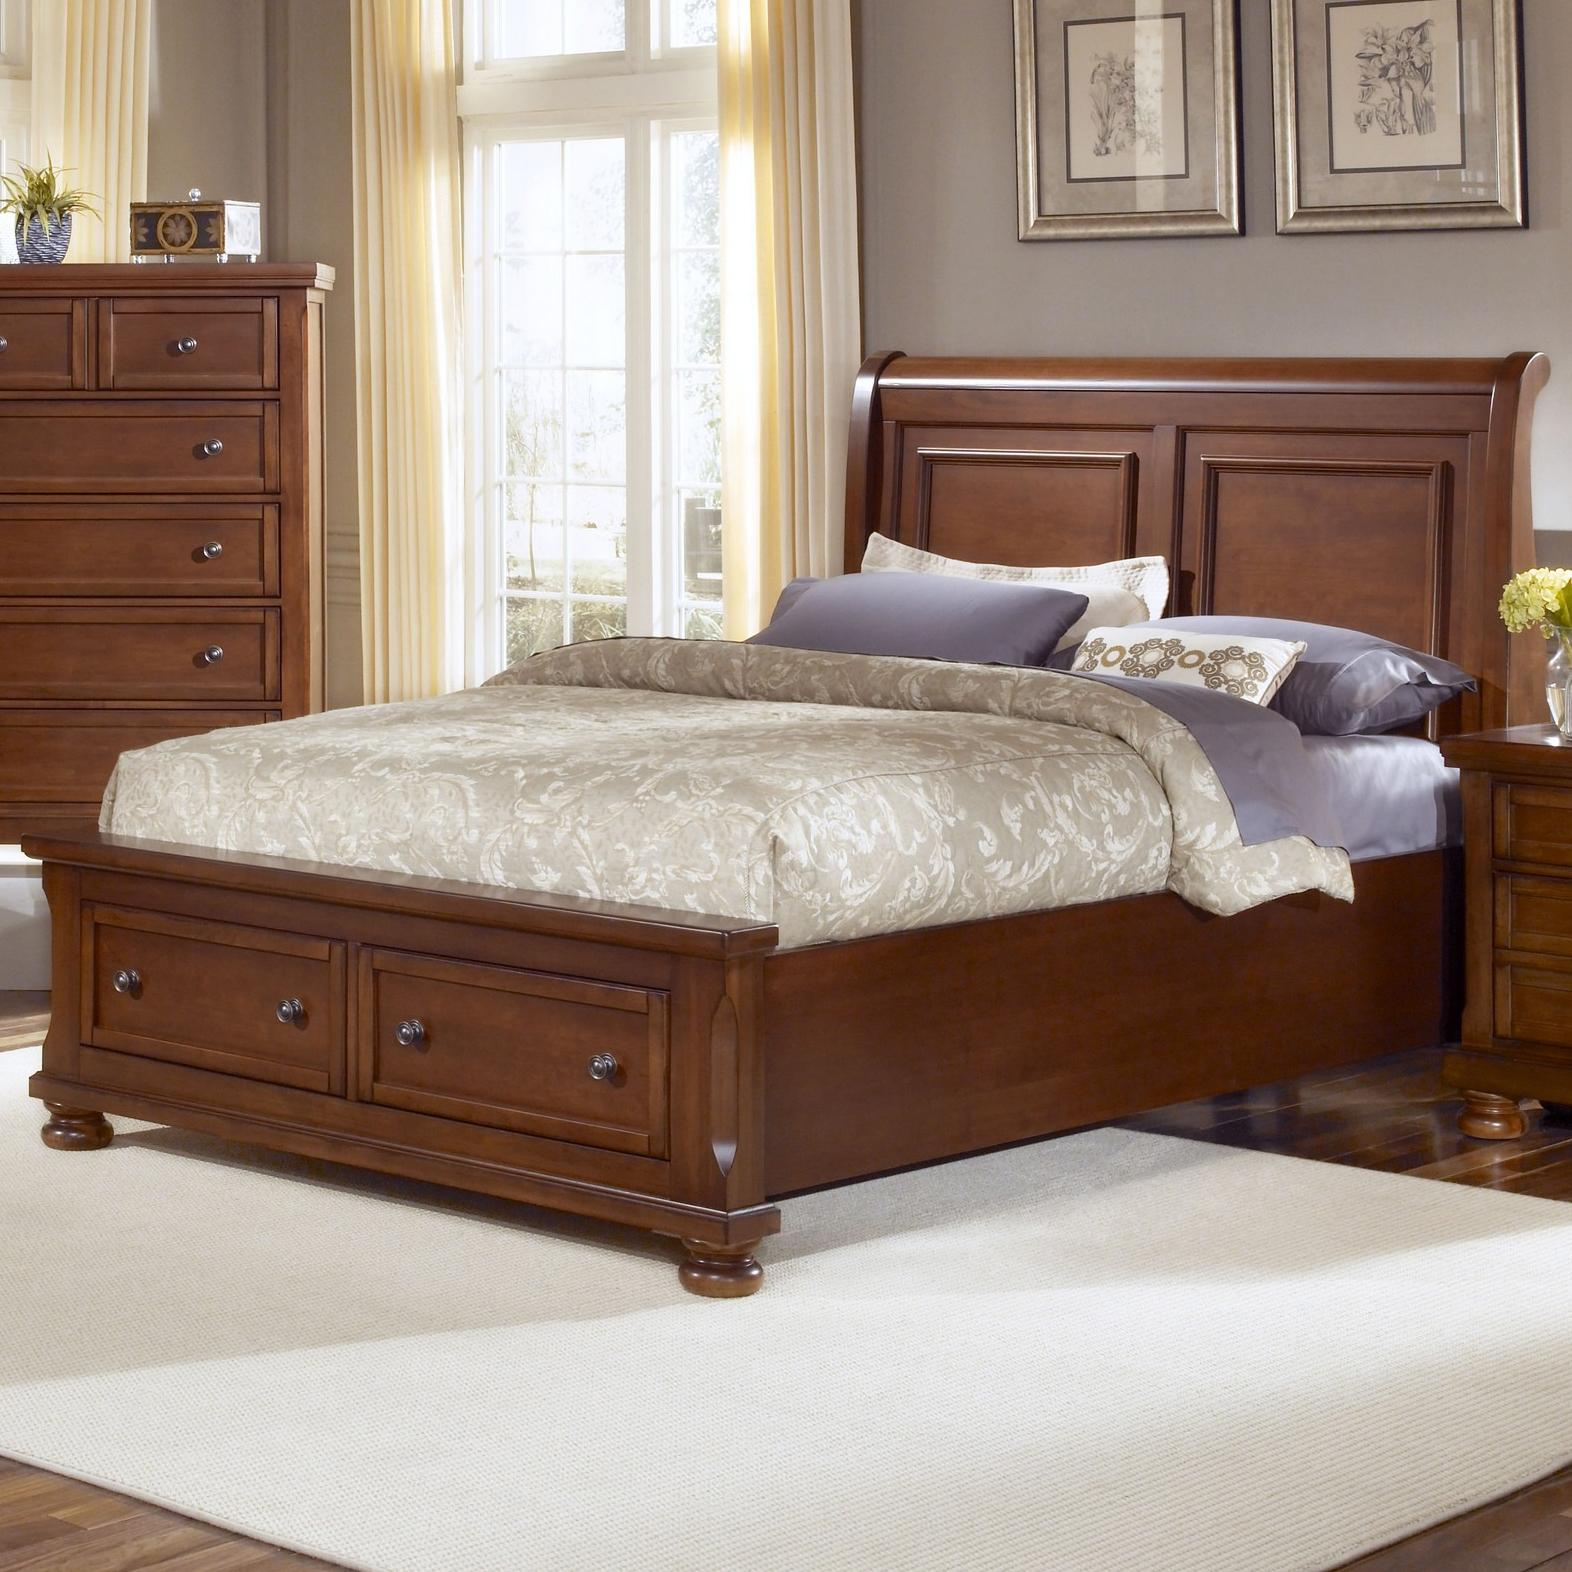 vaughan bassett reflections king storage bed with sleigh vaughan bassett reflections king sleigh storage bed in